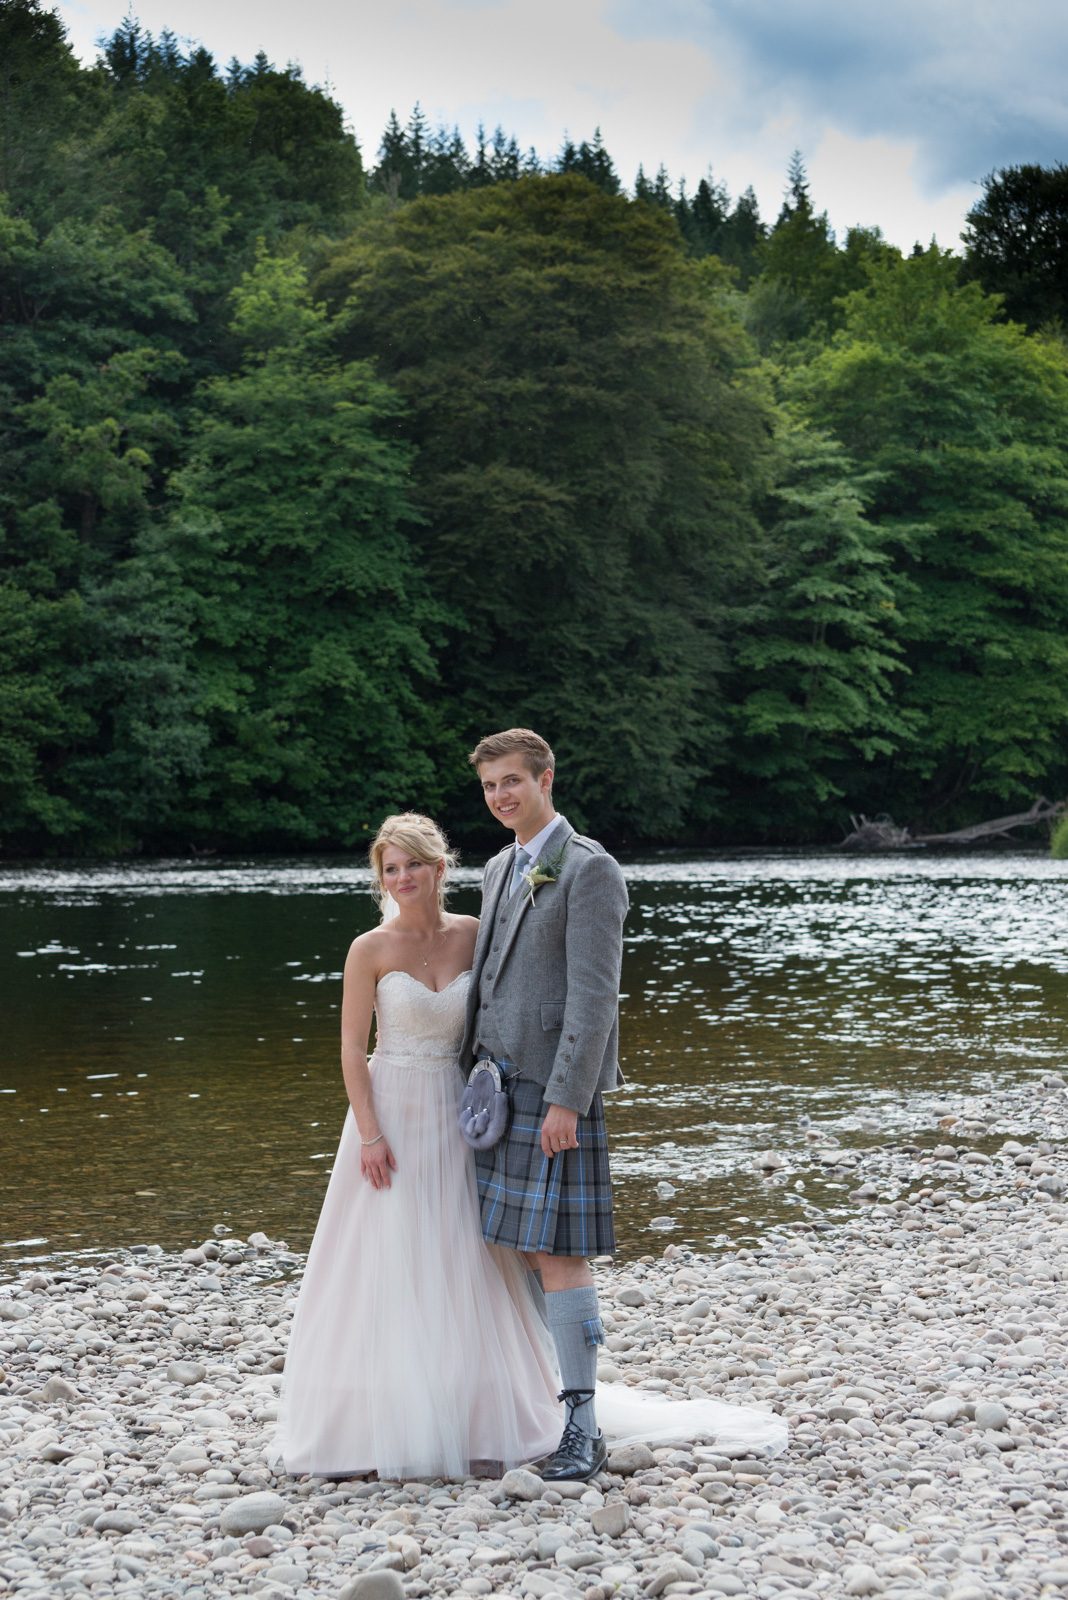 Bride and groom - romantic by the river Tay at Dunkeld House Hotel 5